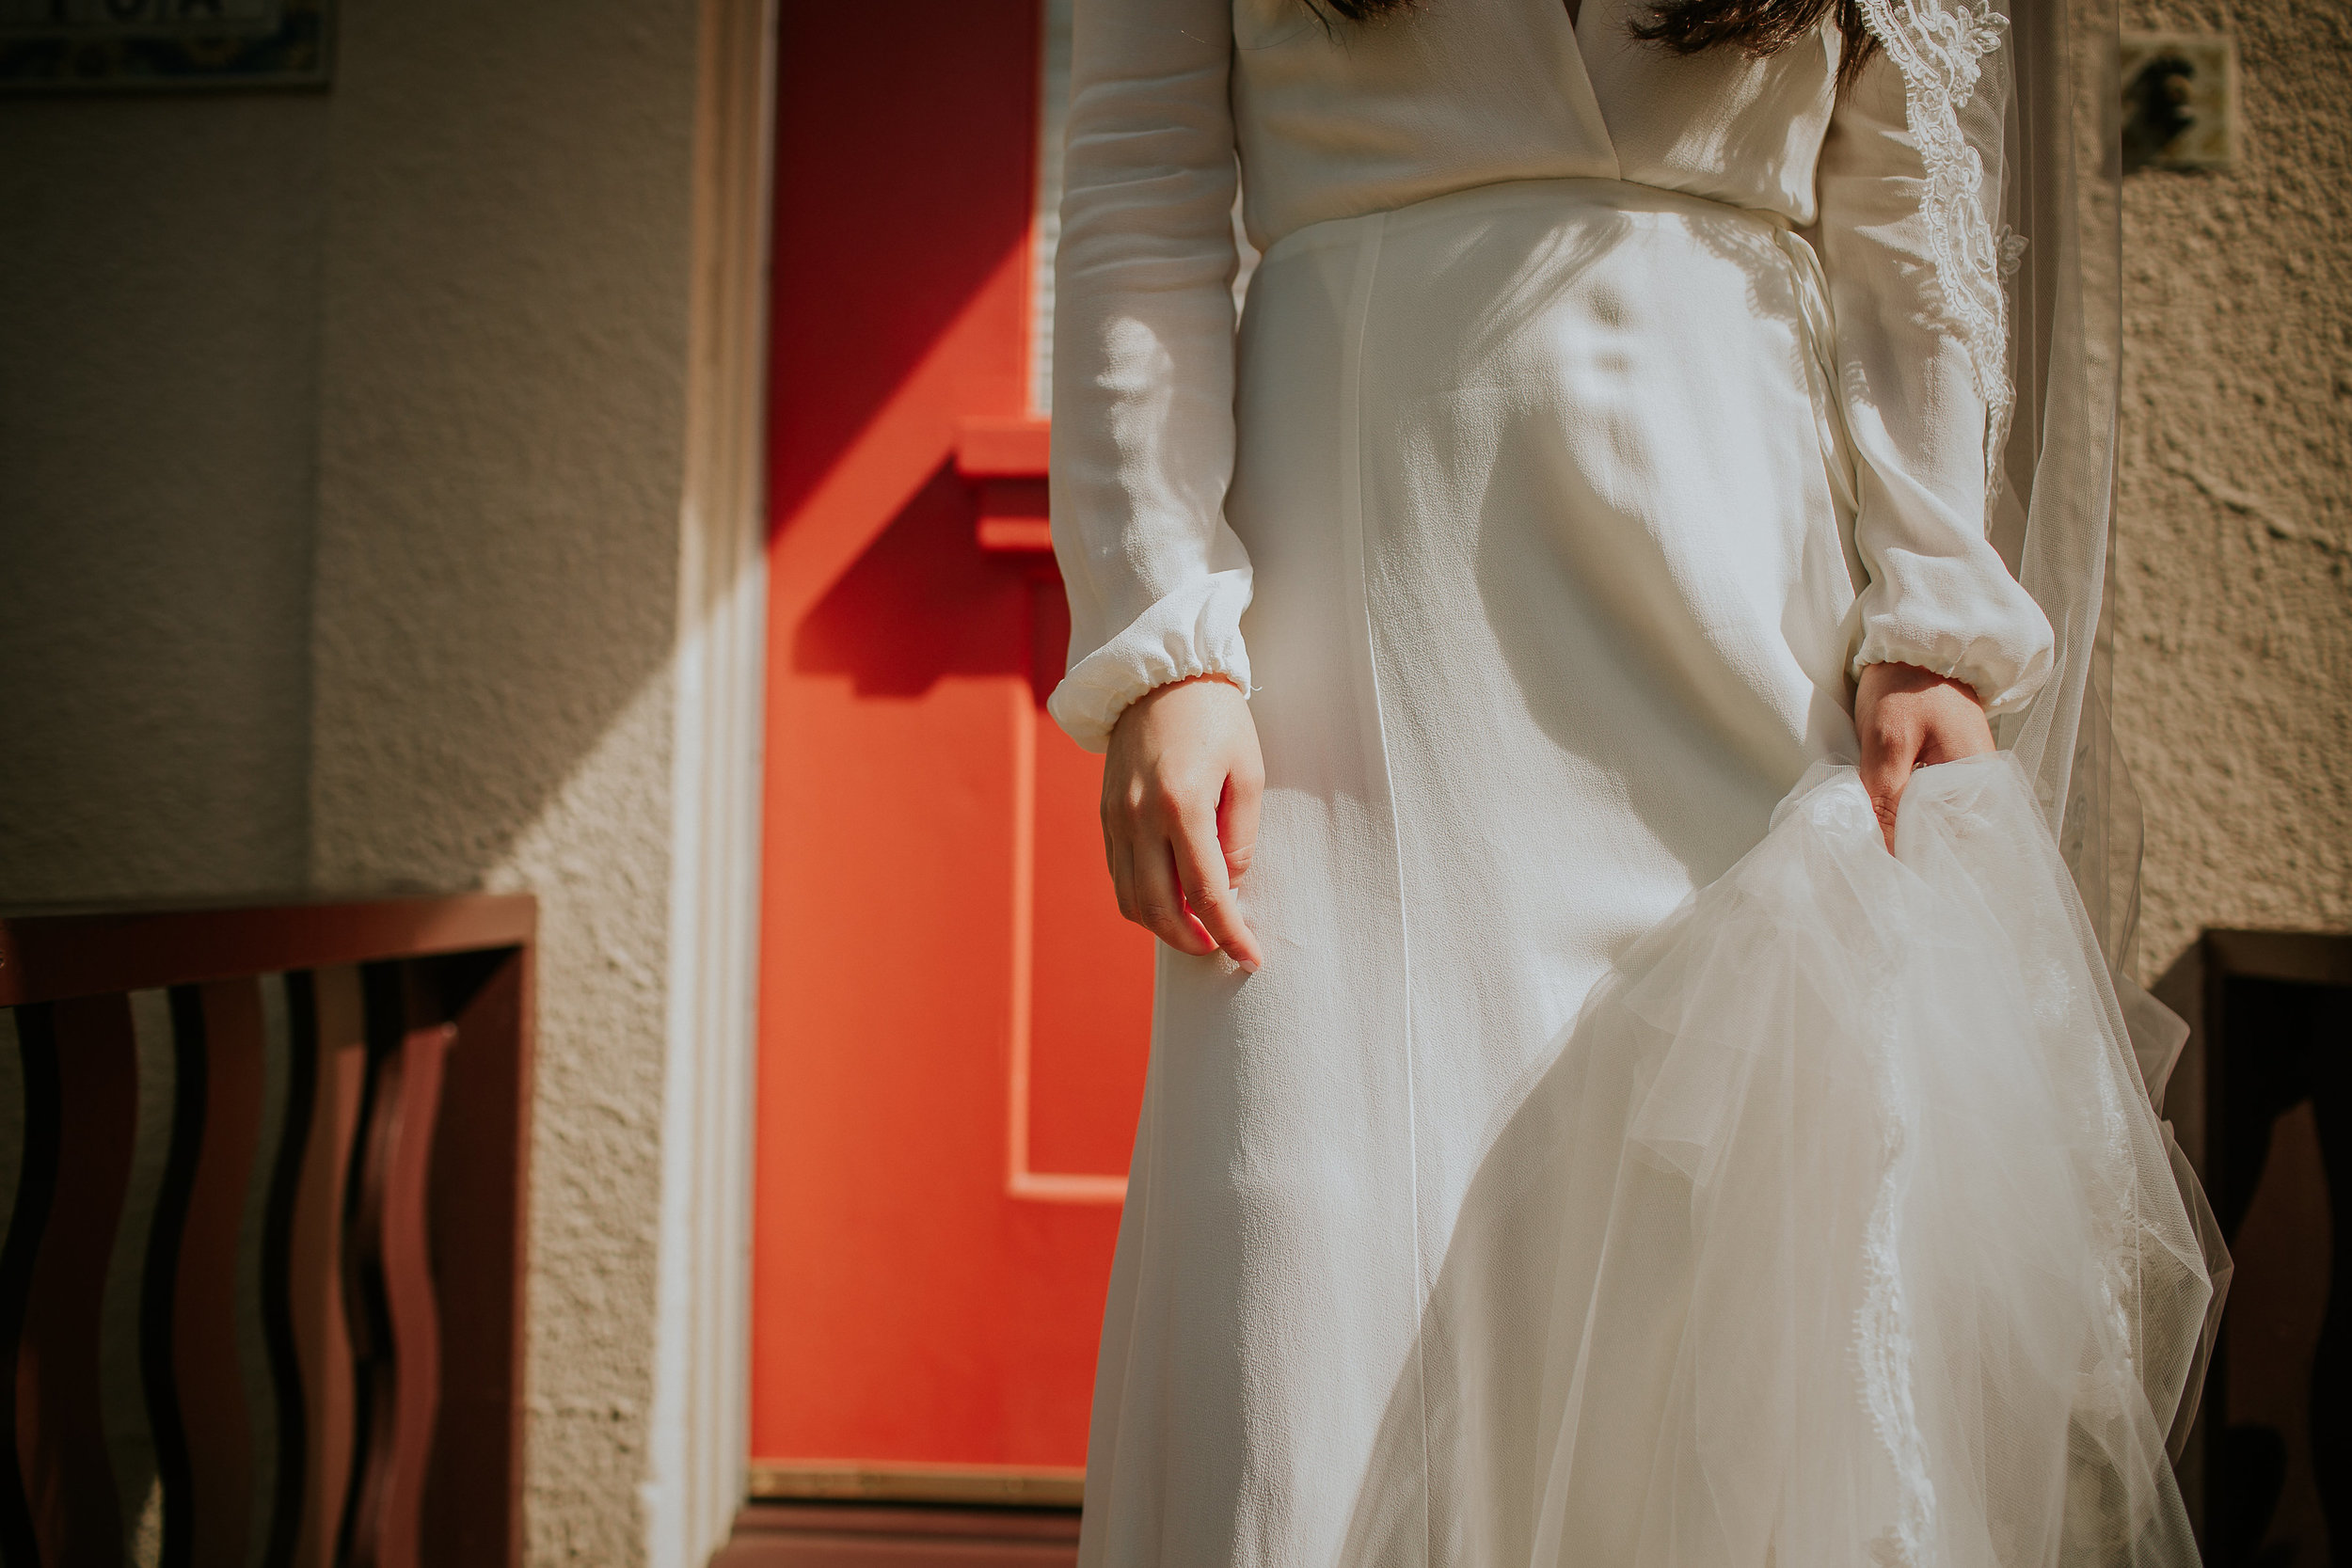 GabrielaandDeJuansantabarbaracourthouseweddingstellamaresweddingelopement-109.jpg